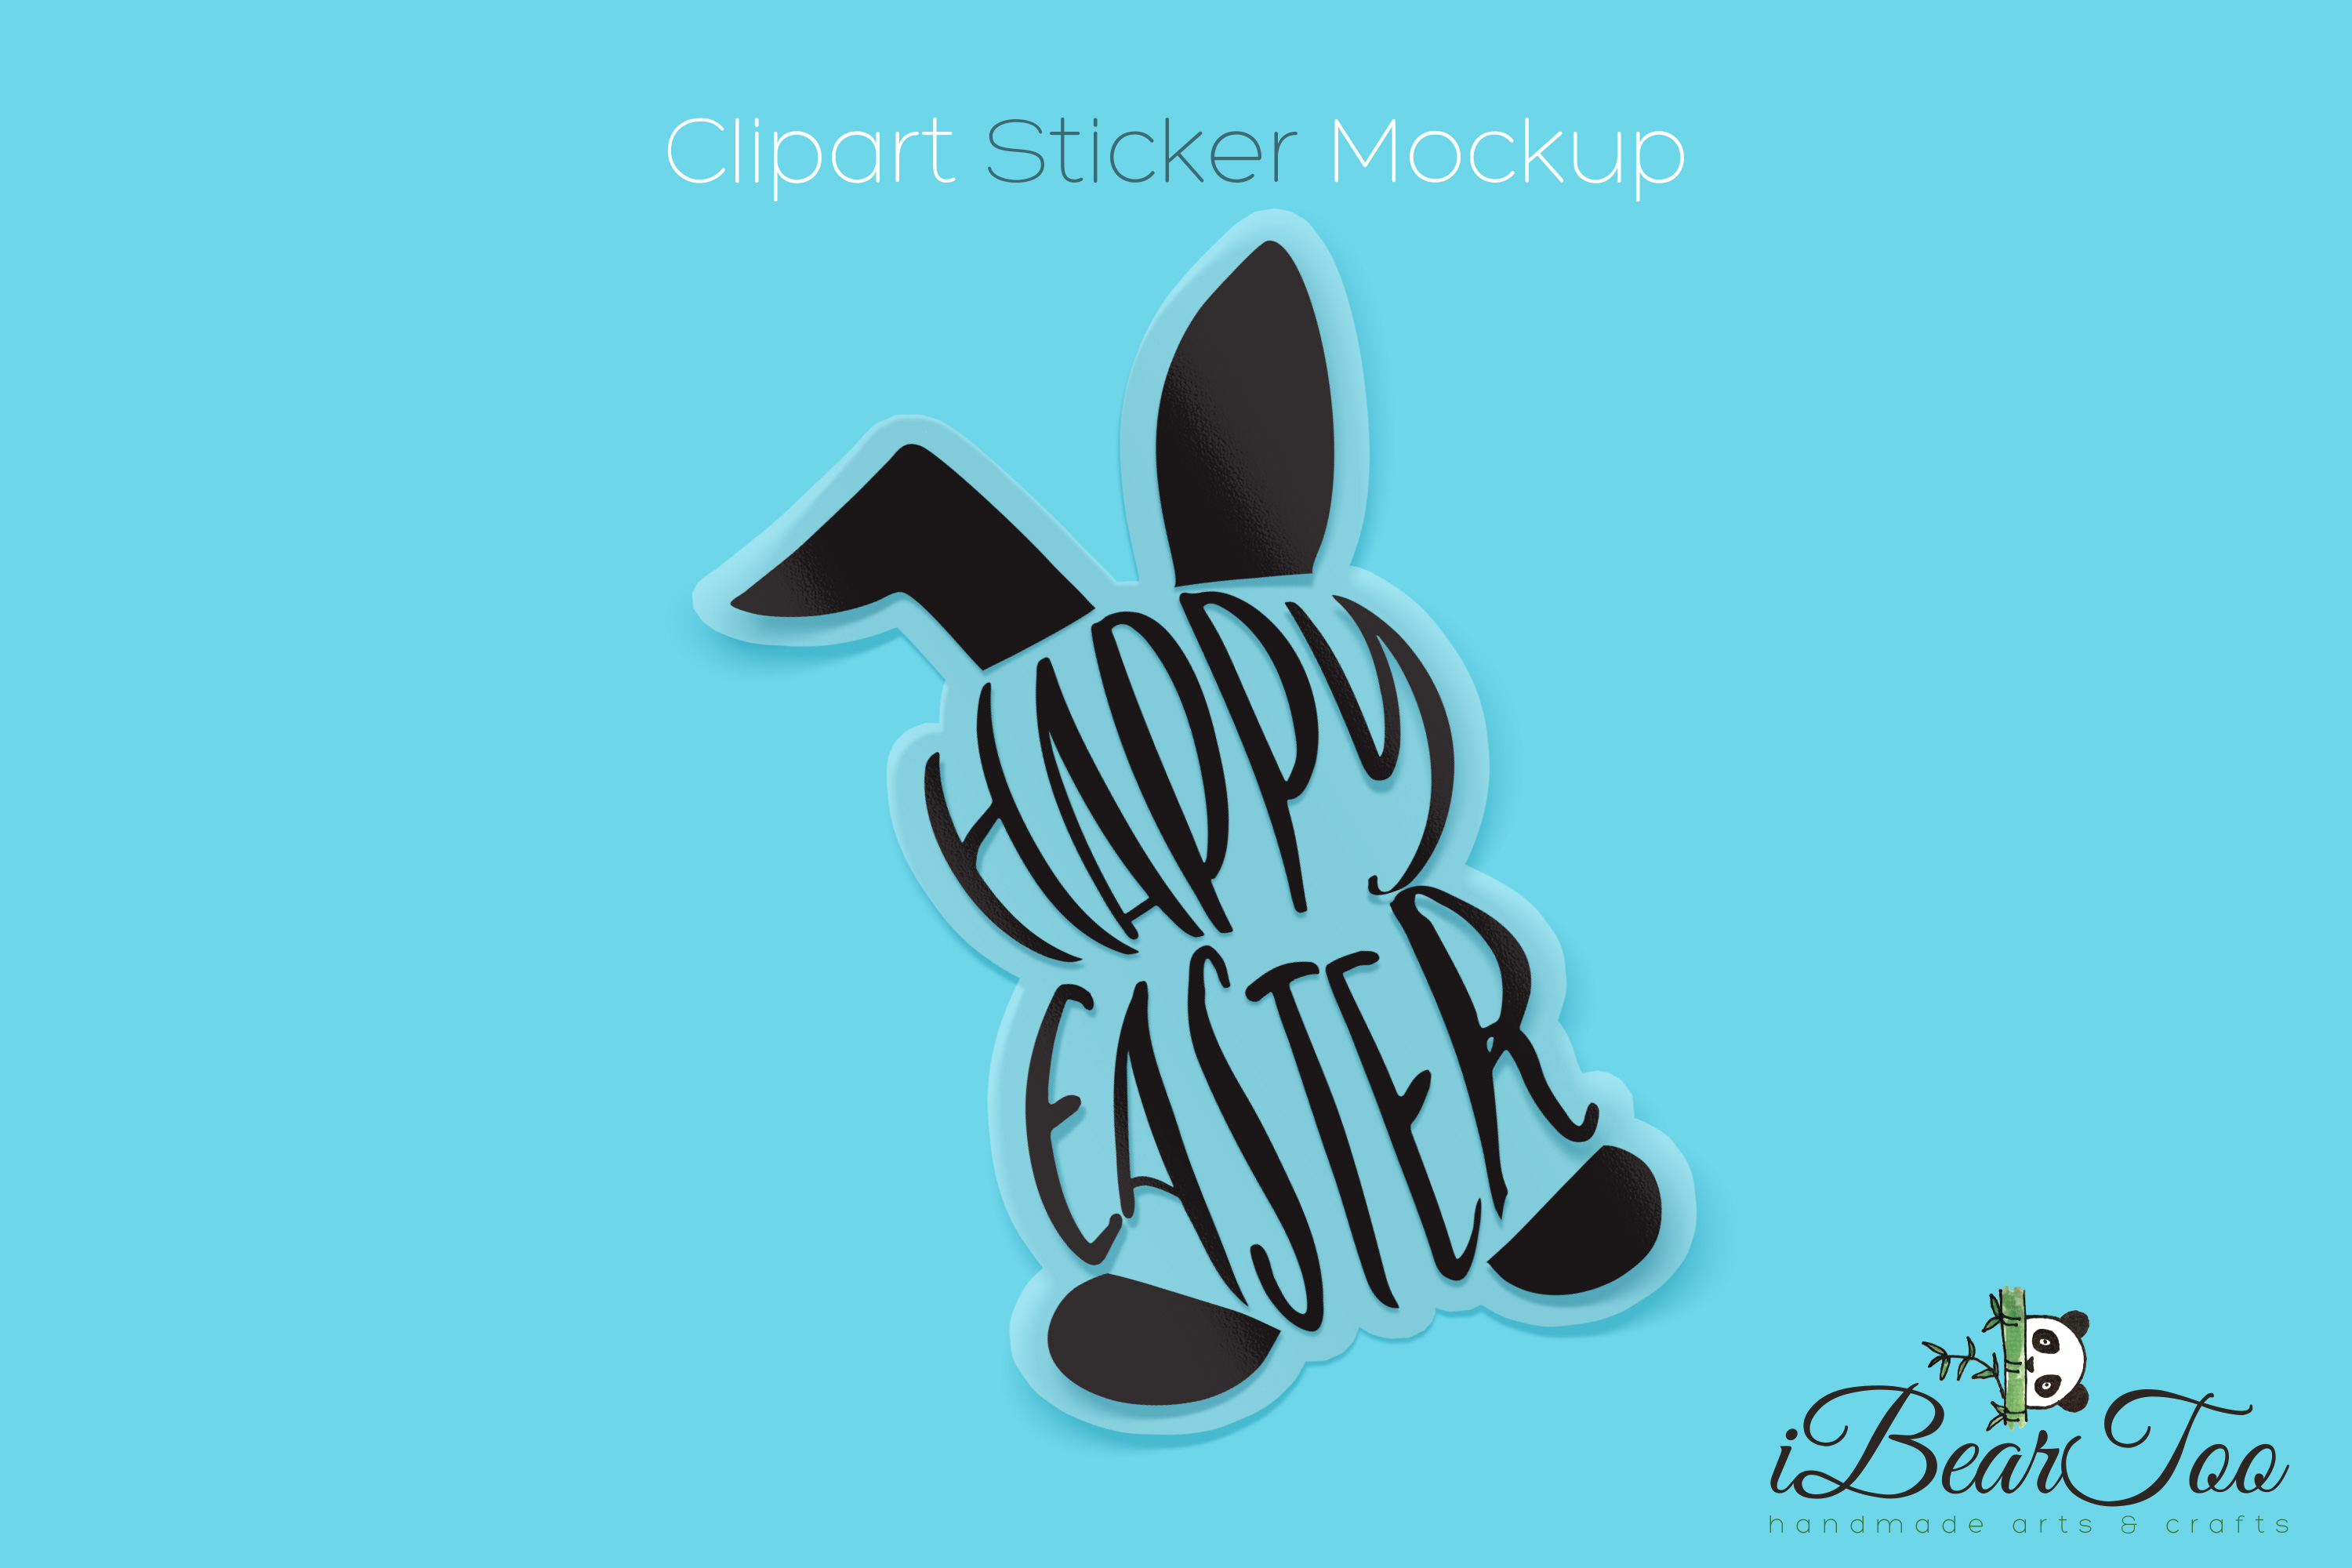 Happy Easter Bunny SVG Rabbit Black Clipart Vector Cut Files example image 5